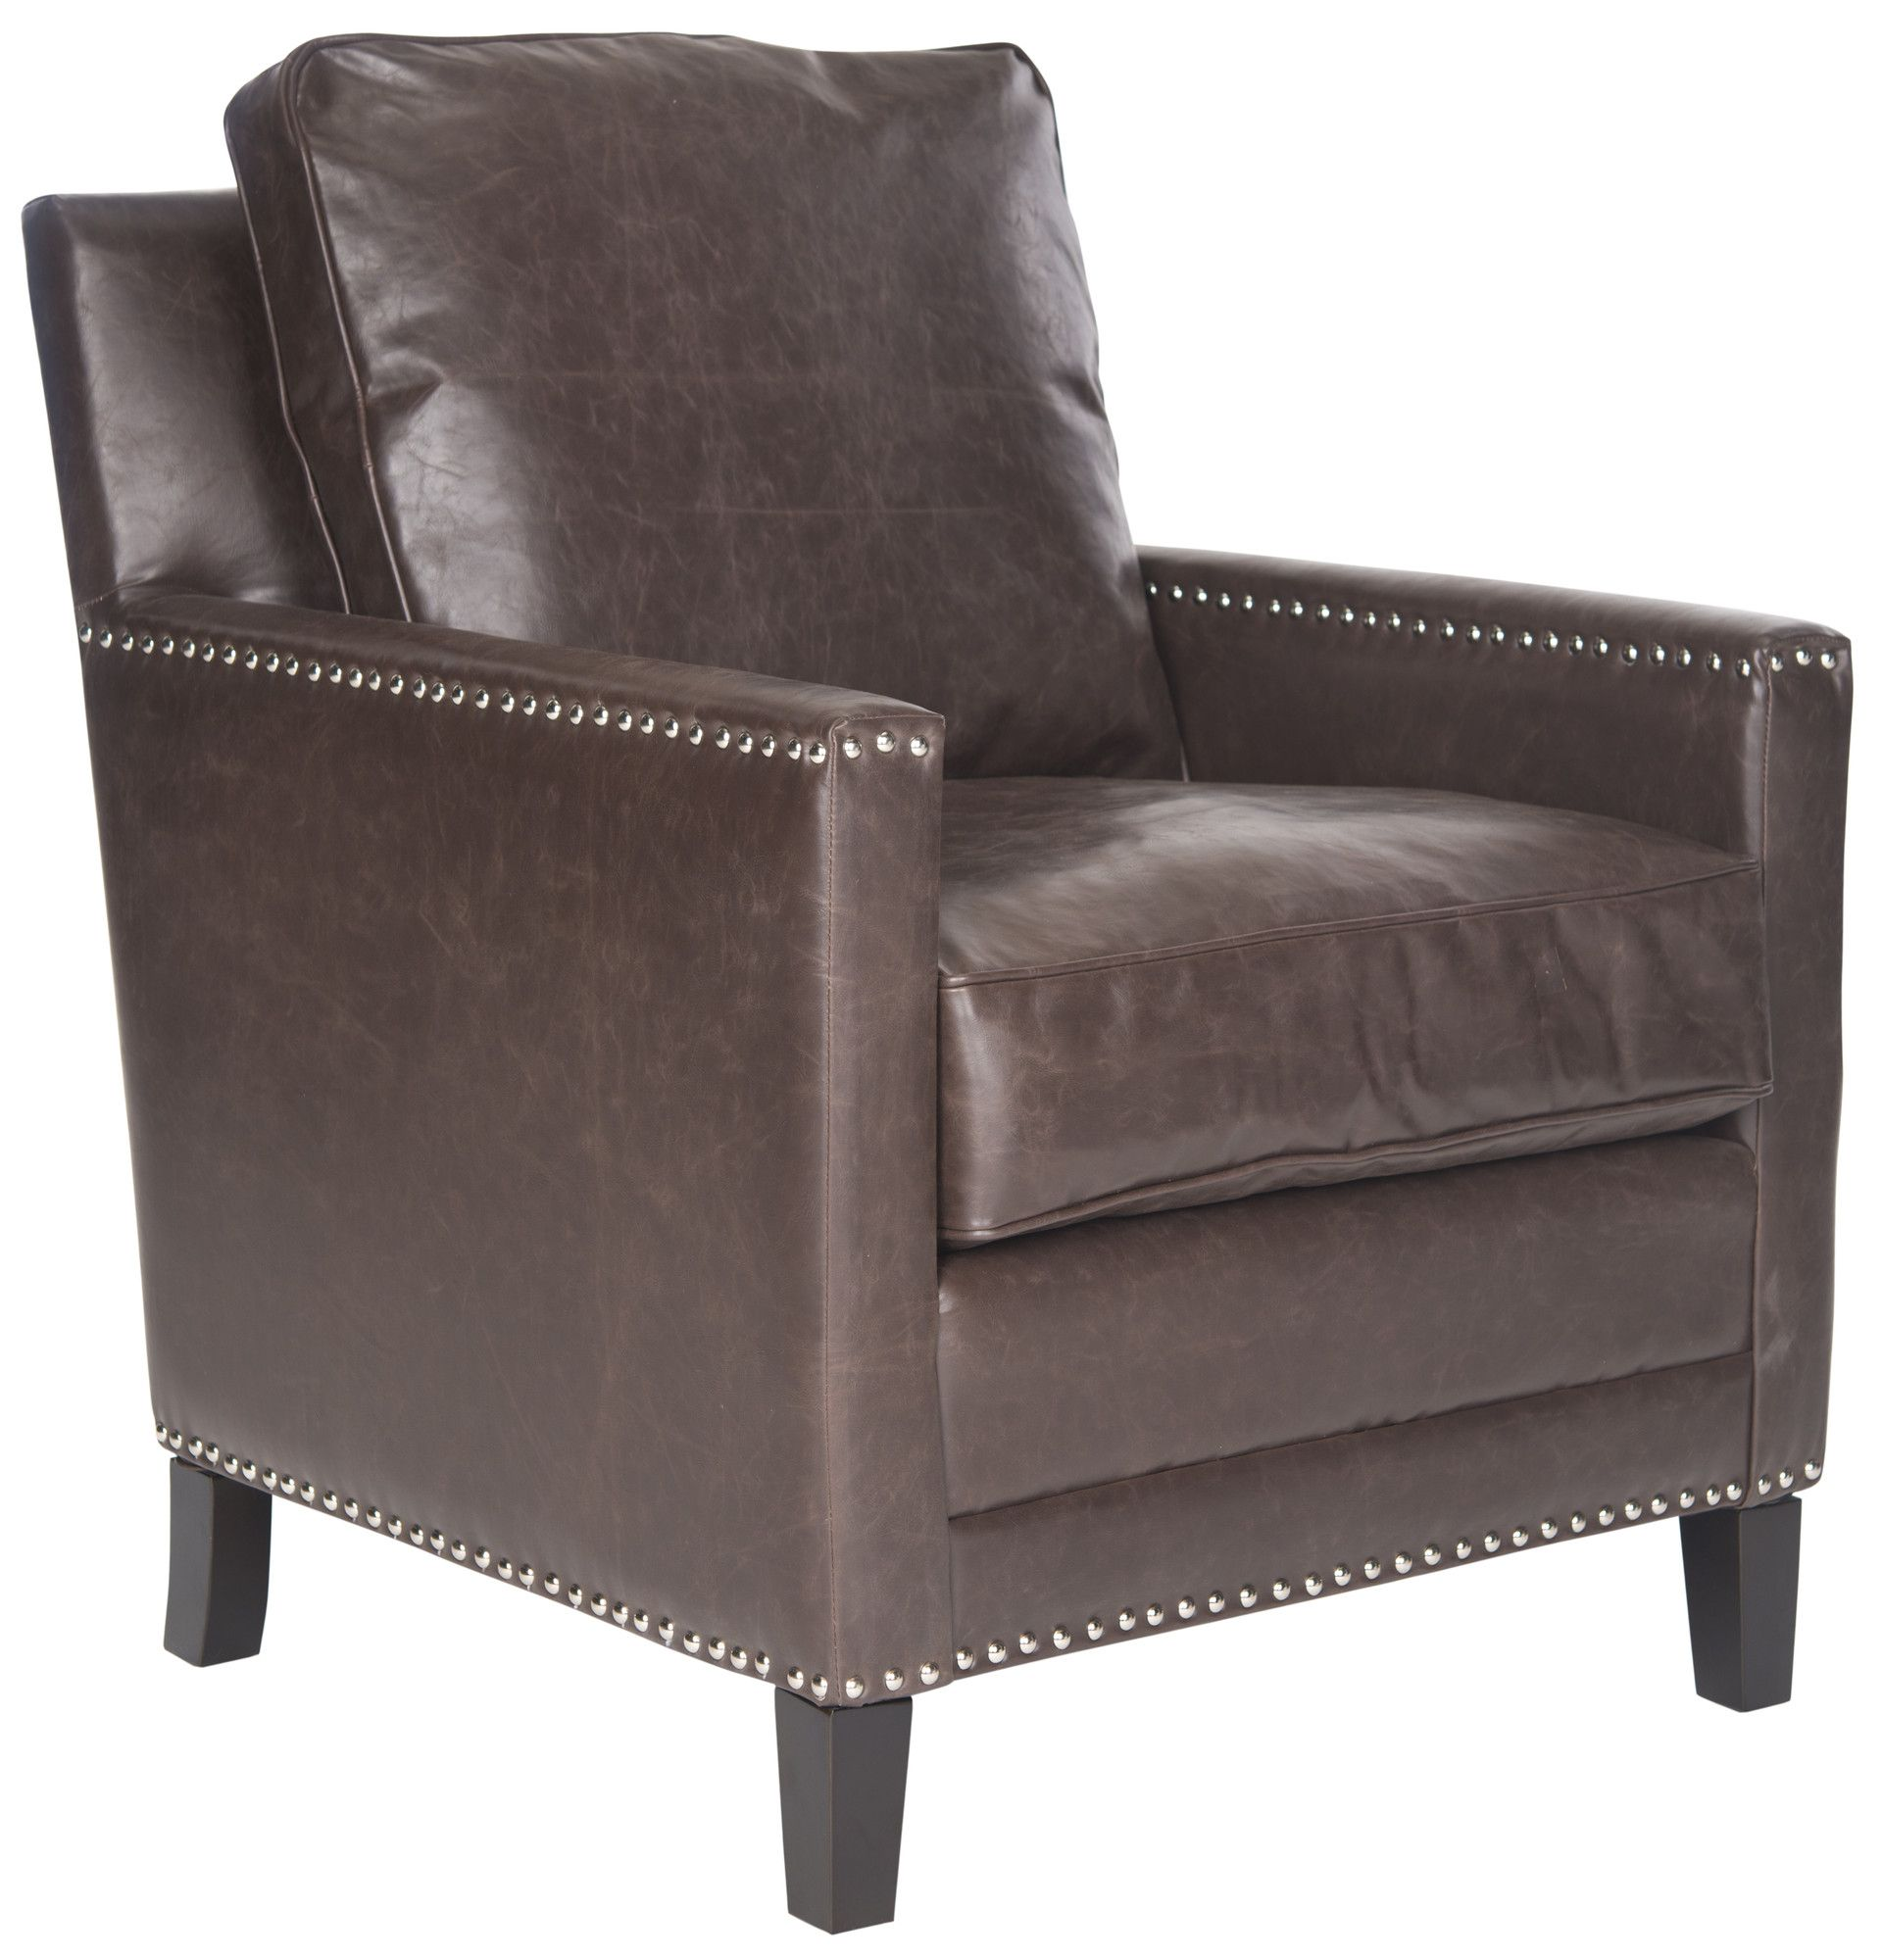 Safavieh Buckler Club Chair U0026 Reviews | Wayfair